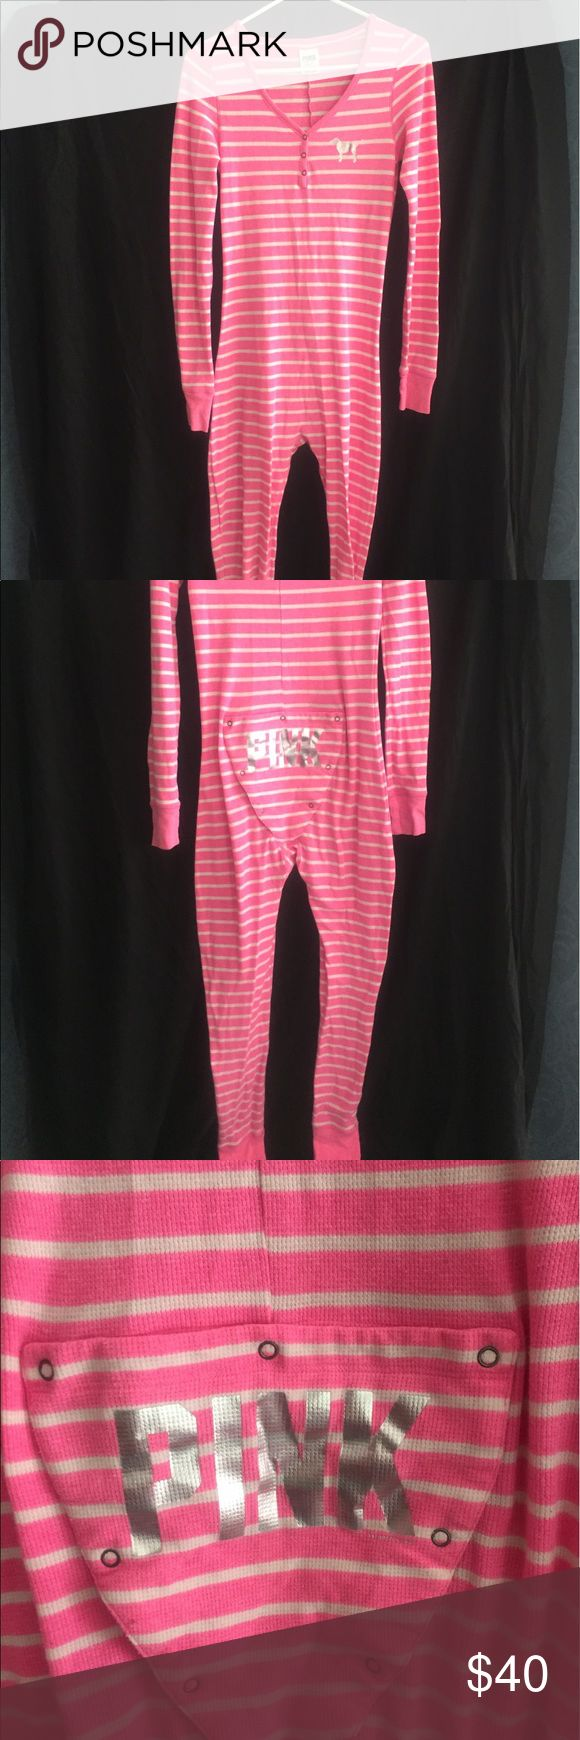 PINK by Victoria's Secret long underwear/pajamas Size Medium. One piece long johns, open/close back with silver PINK logo. So cute! And comfy! PINK Victoria's Secret Intimates & Sleepwear Pajamas